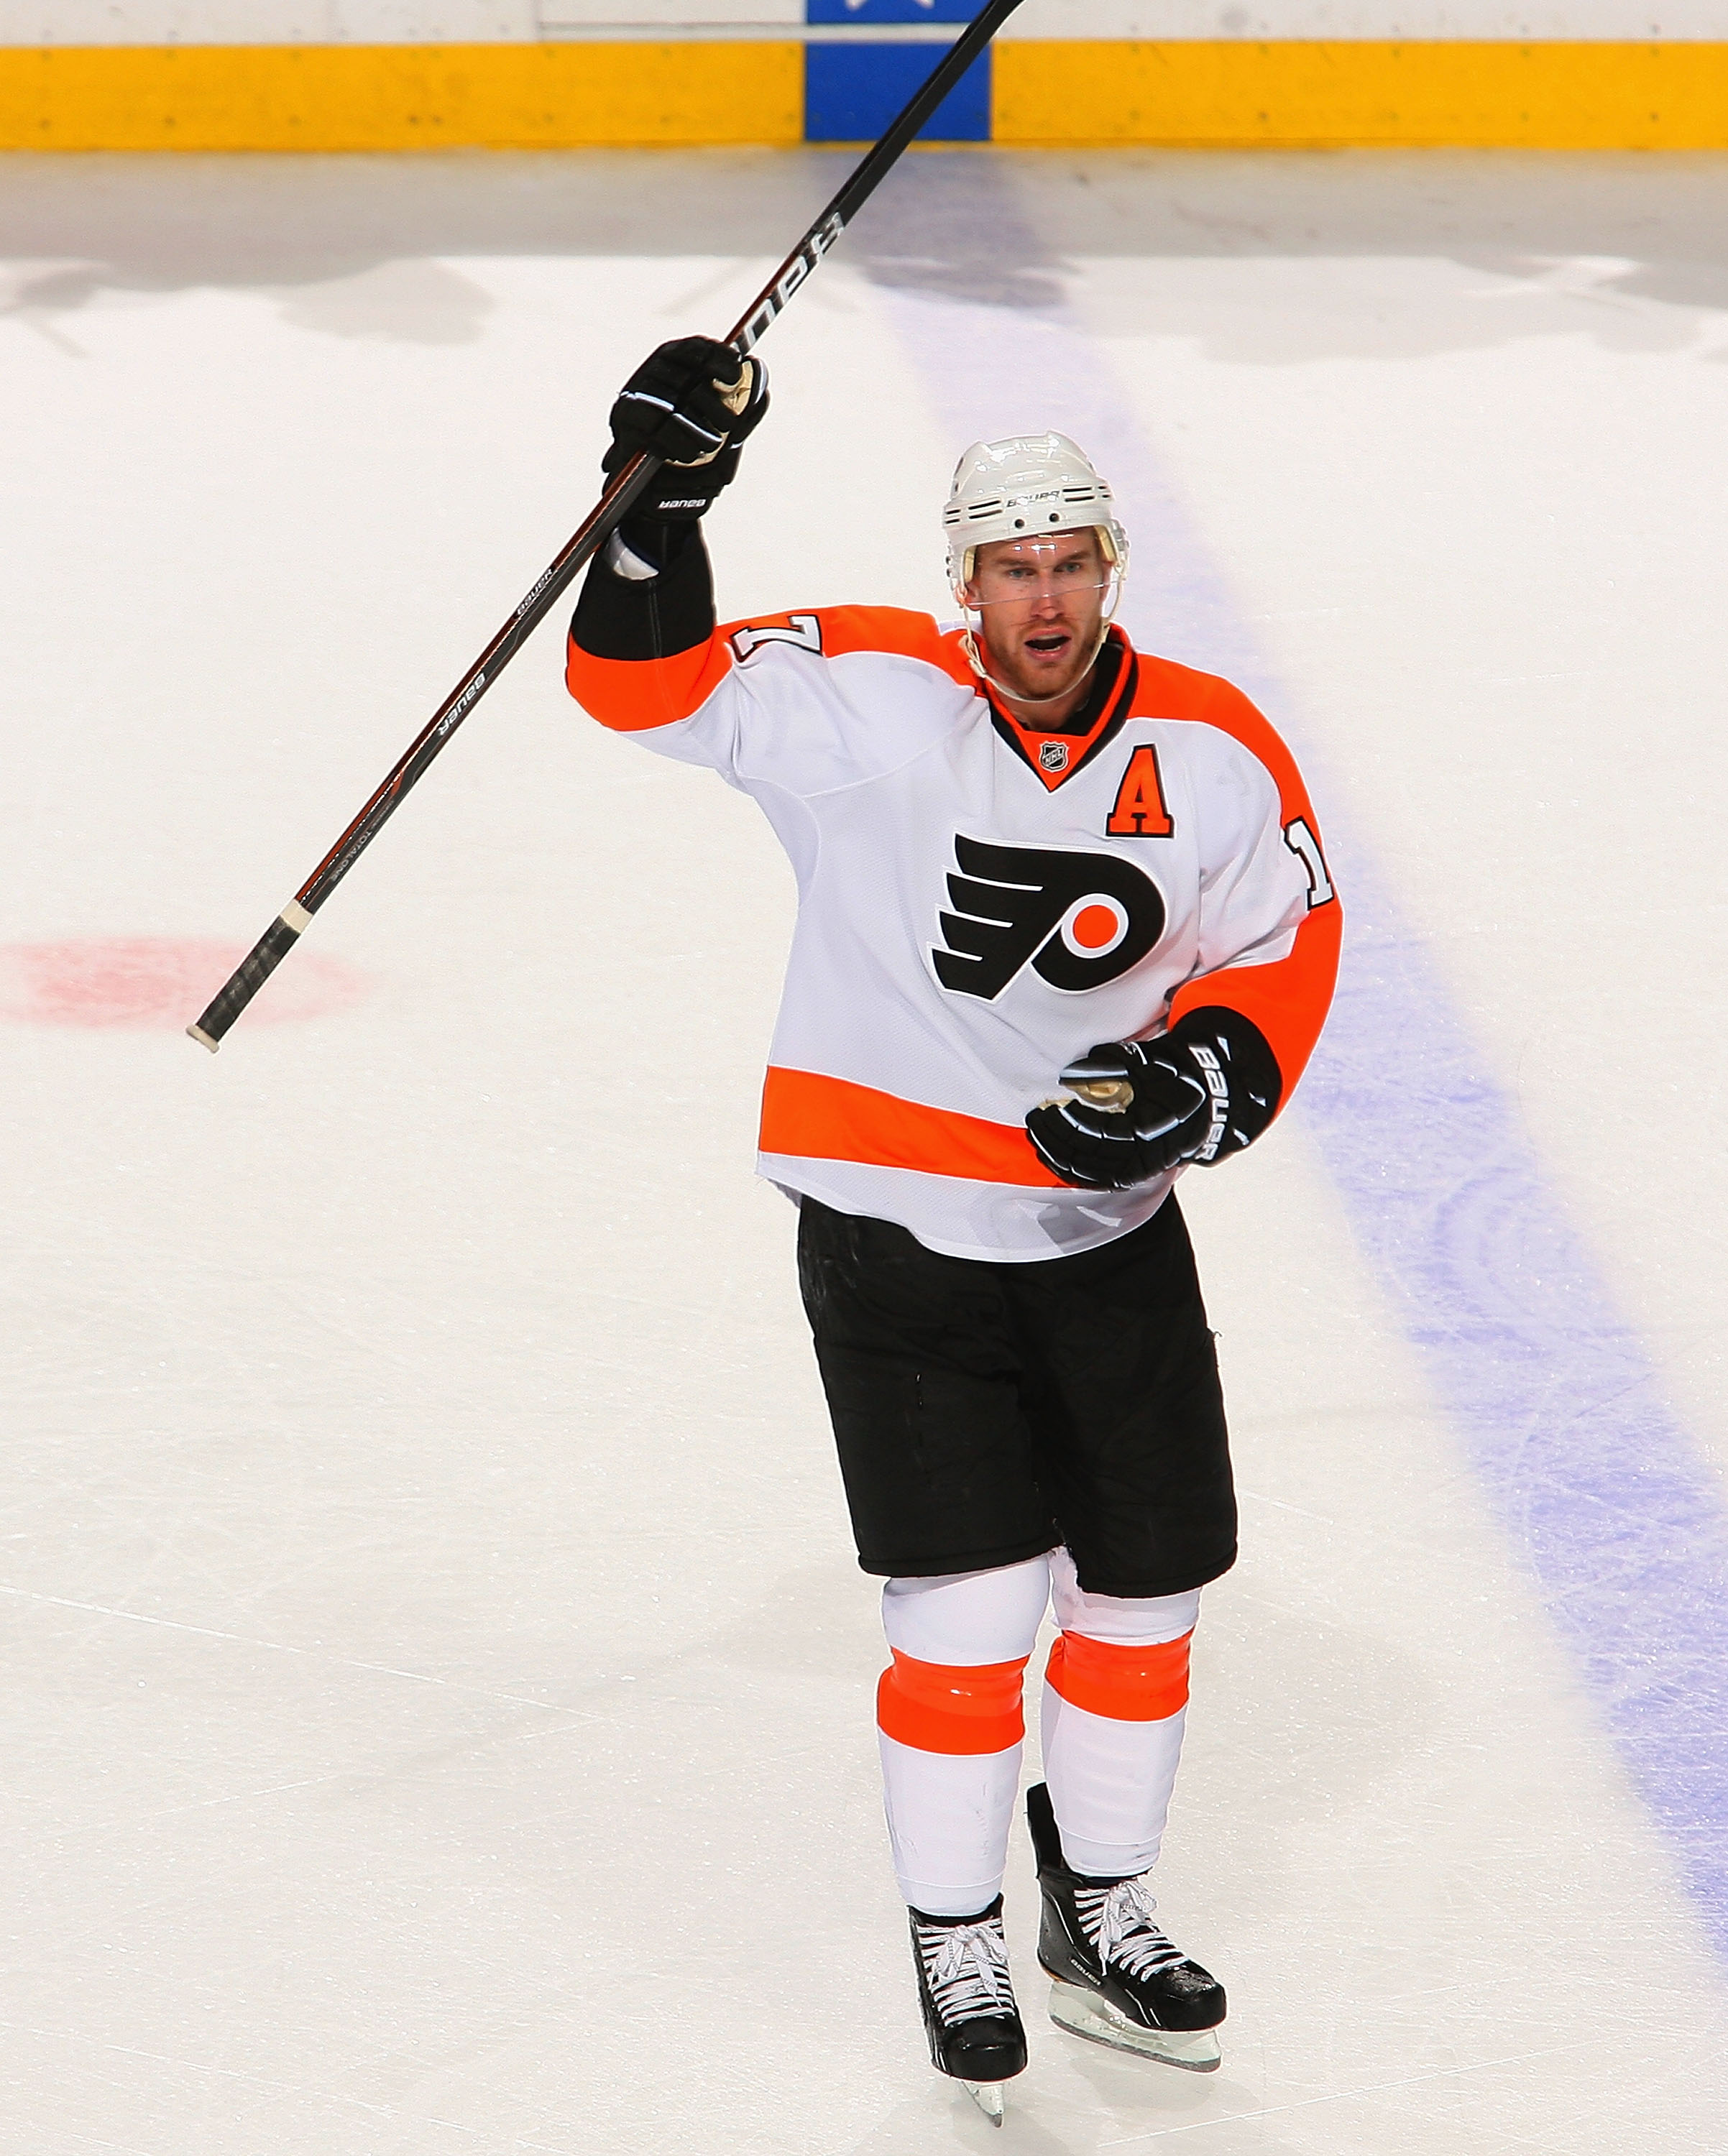 BUFFALO, NY - APRIL 18: Jeff Carter #17 of the Philadelphia Flyers reacts after Kimmo Timonen #44 scored an empty net goal aginst the Buffalo Sabres  in Game Three of the Eastern Conference Quarterfinals during the 2011 NHL Stanley Cup Playoffs at HSBC Ar